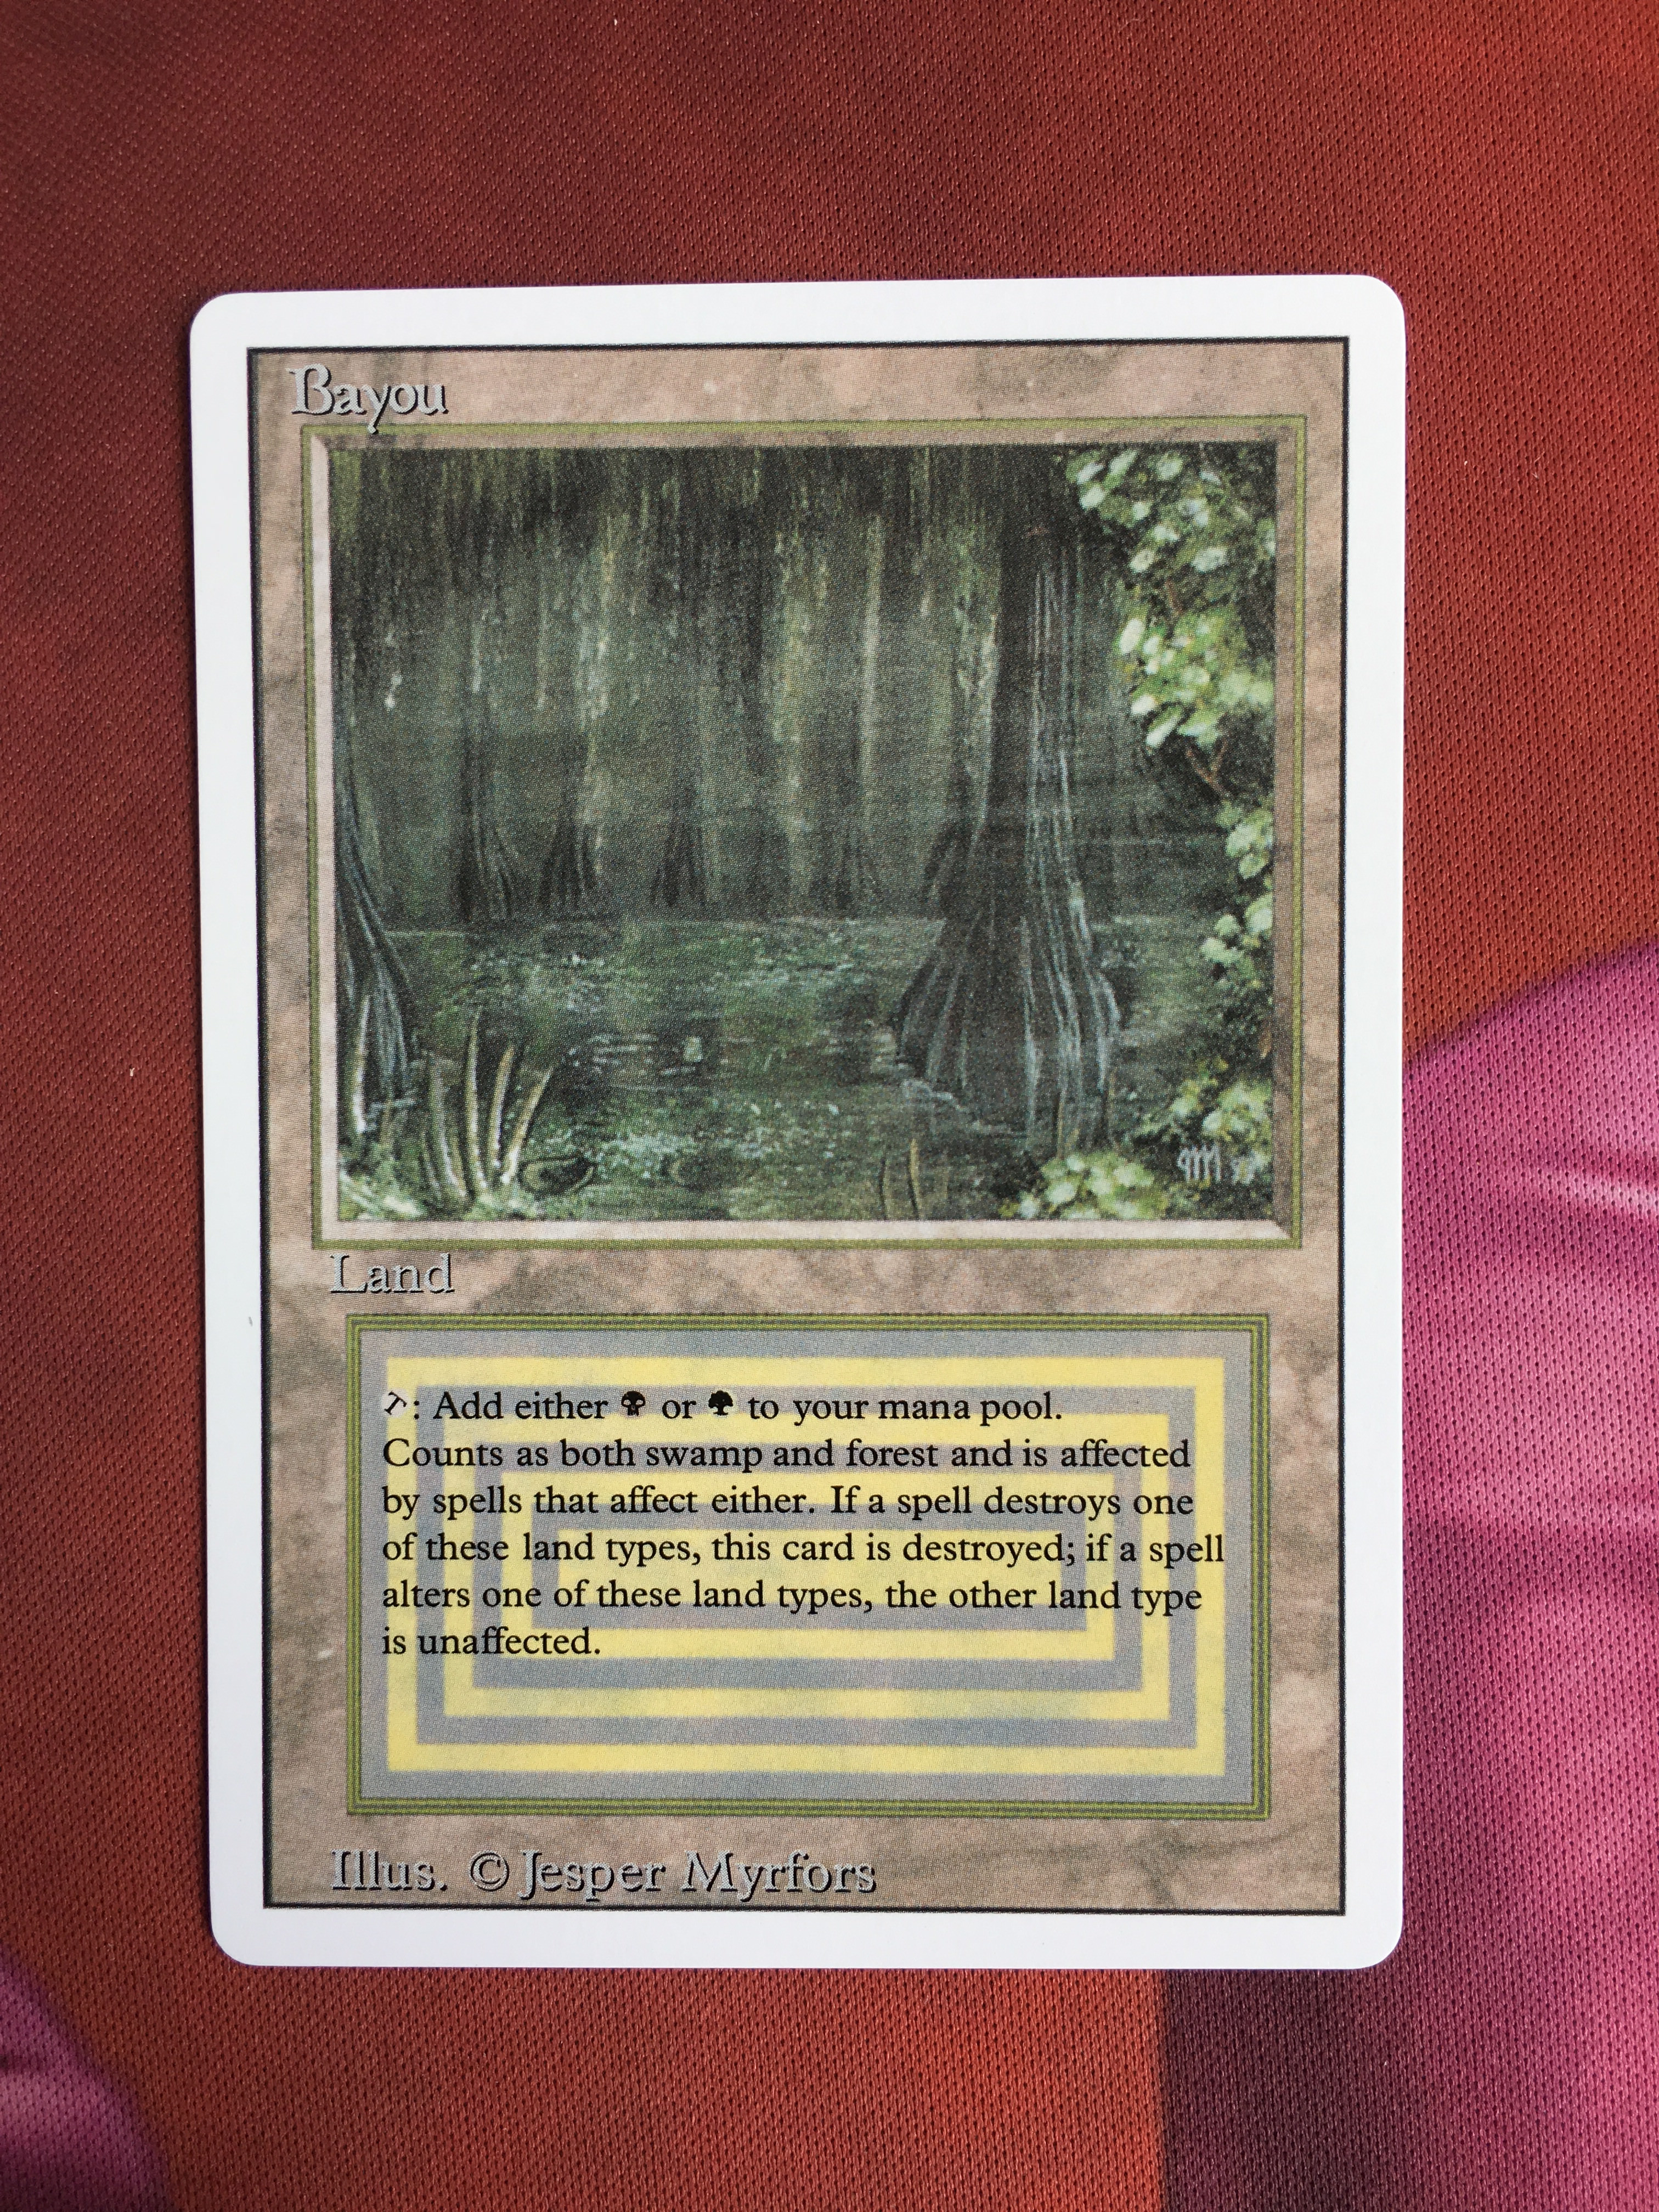 Bayou Revised Magician ProxyKing 8.0 VIP The Proxy Cards To Gathering Every Single Mg Card.